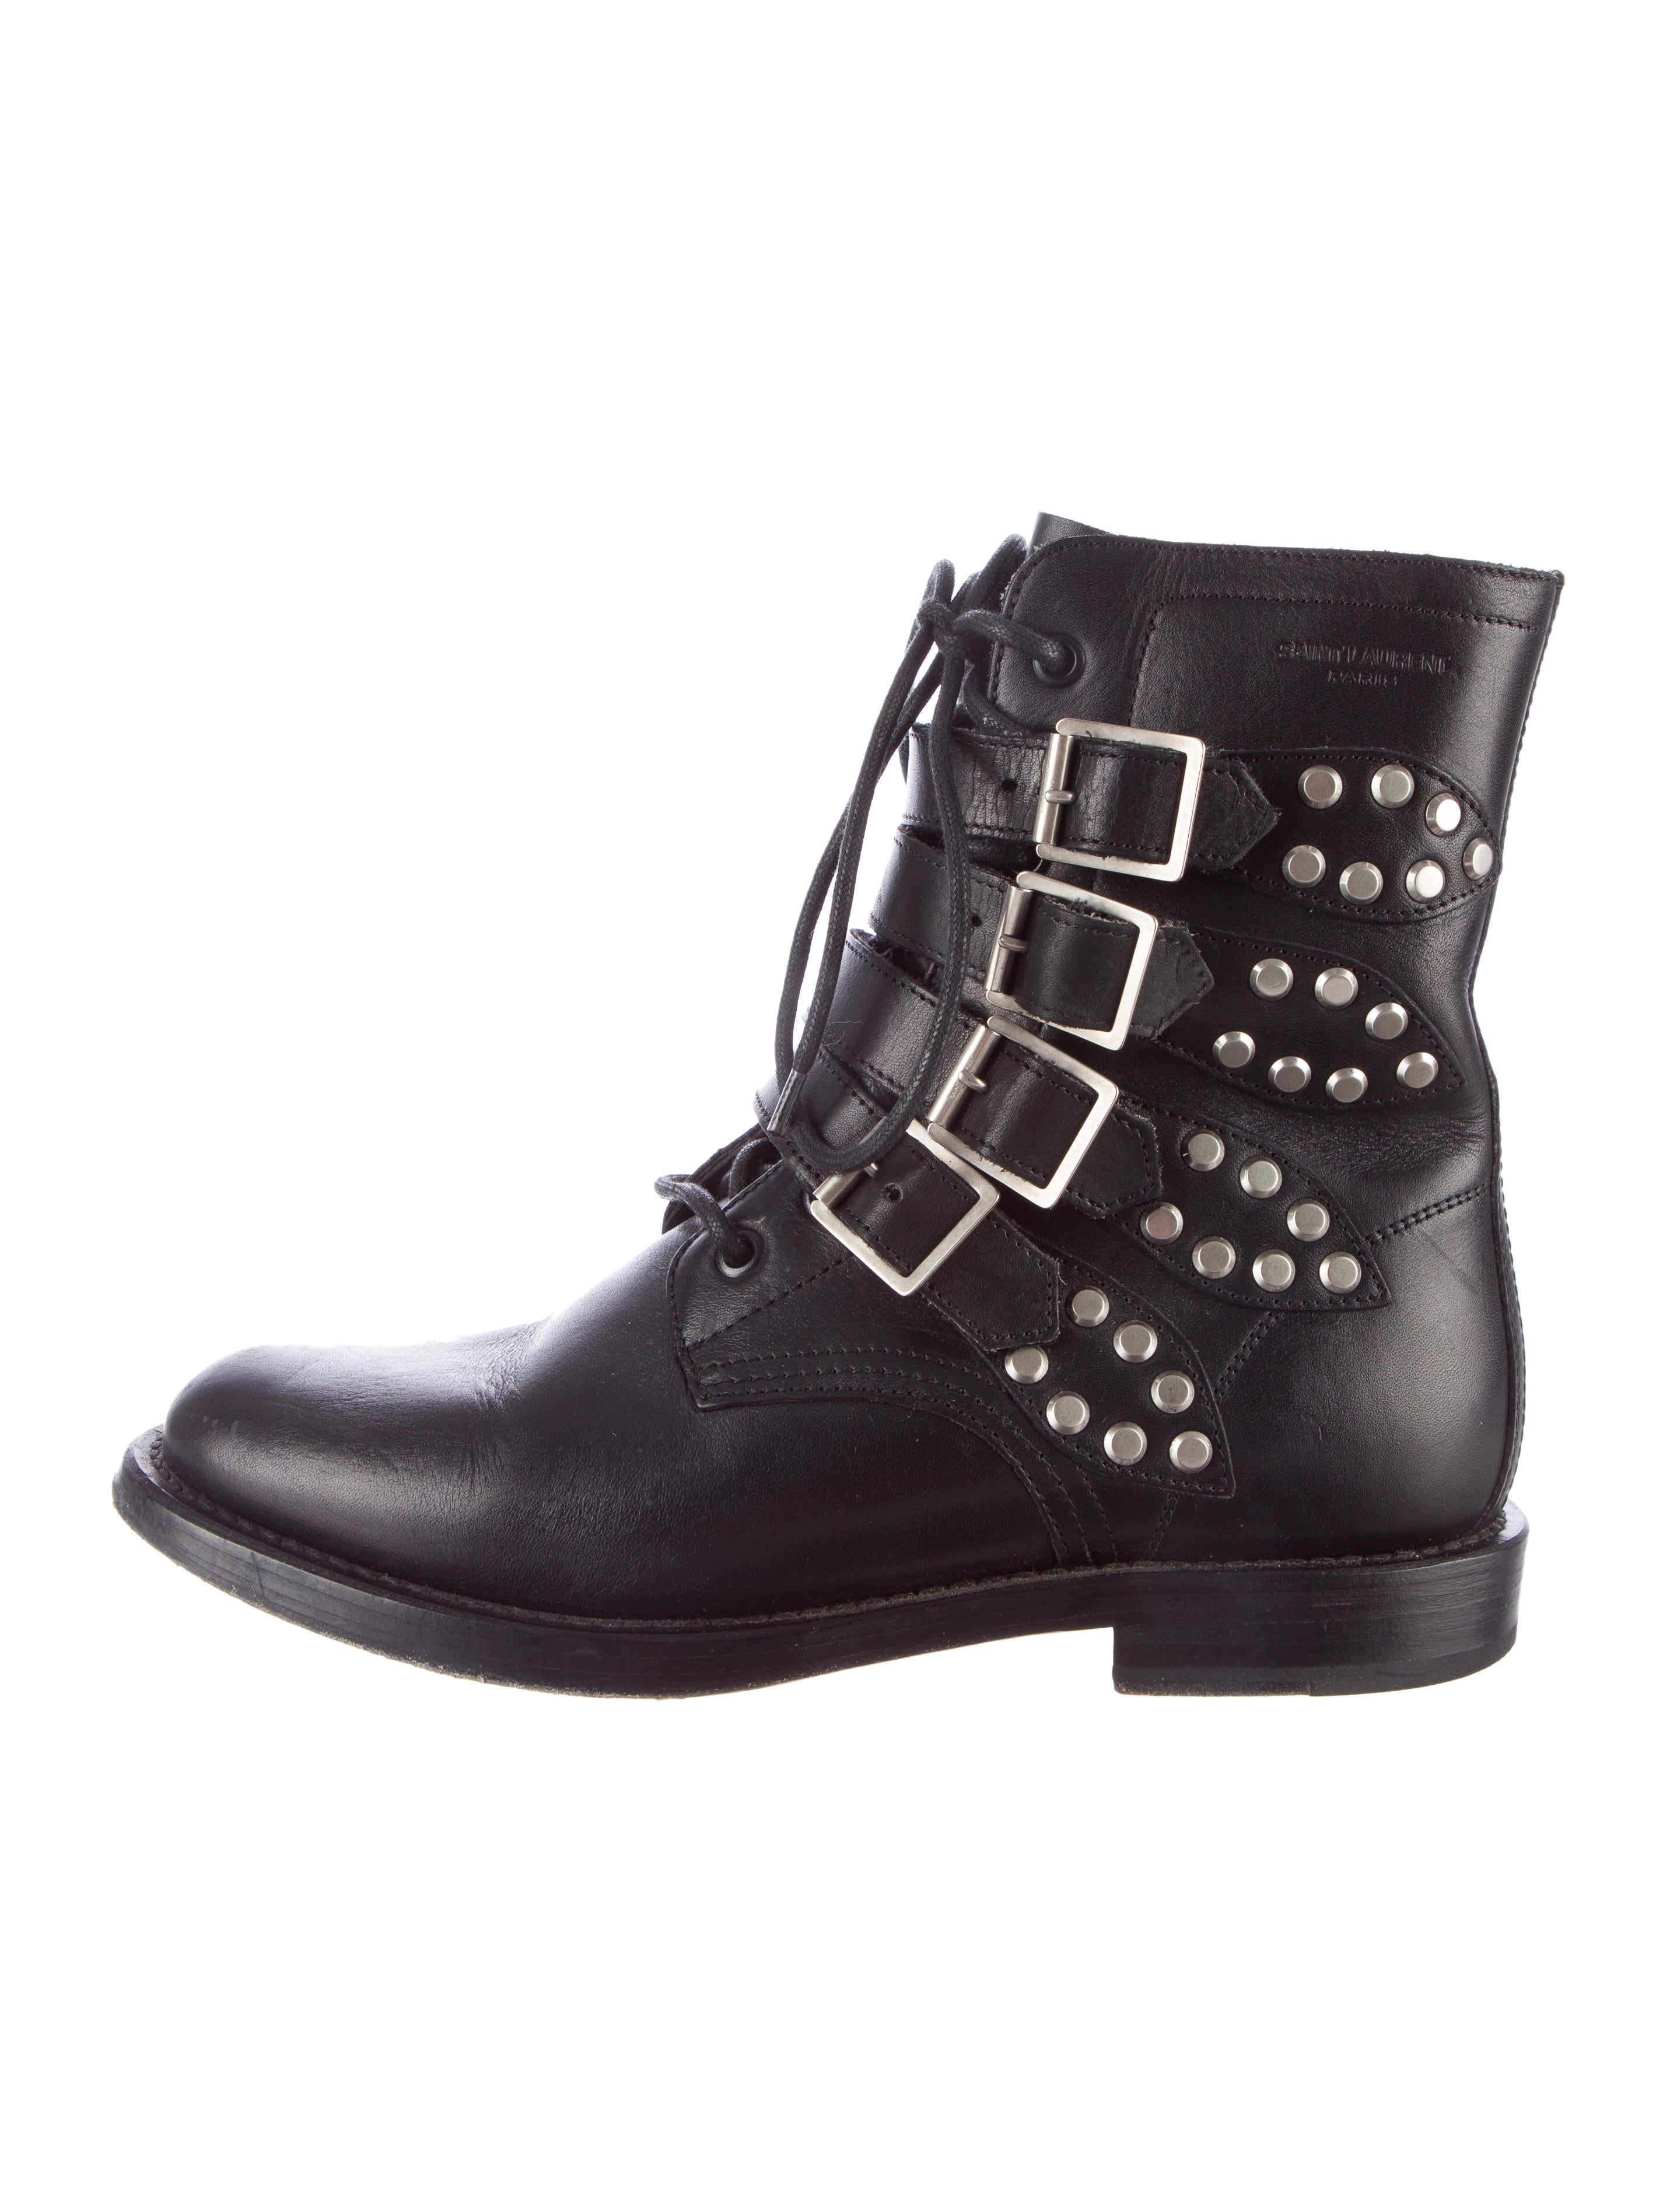 laurent studded biker boots shoes snt23991 the